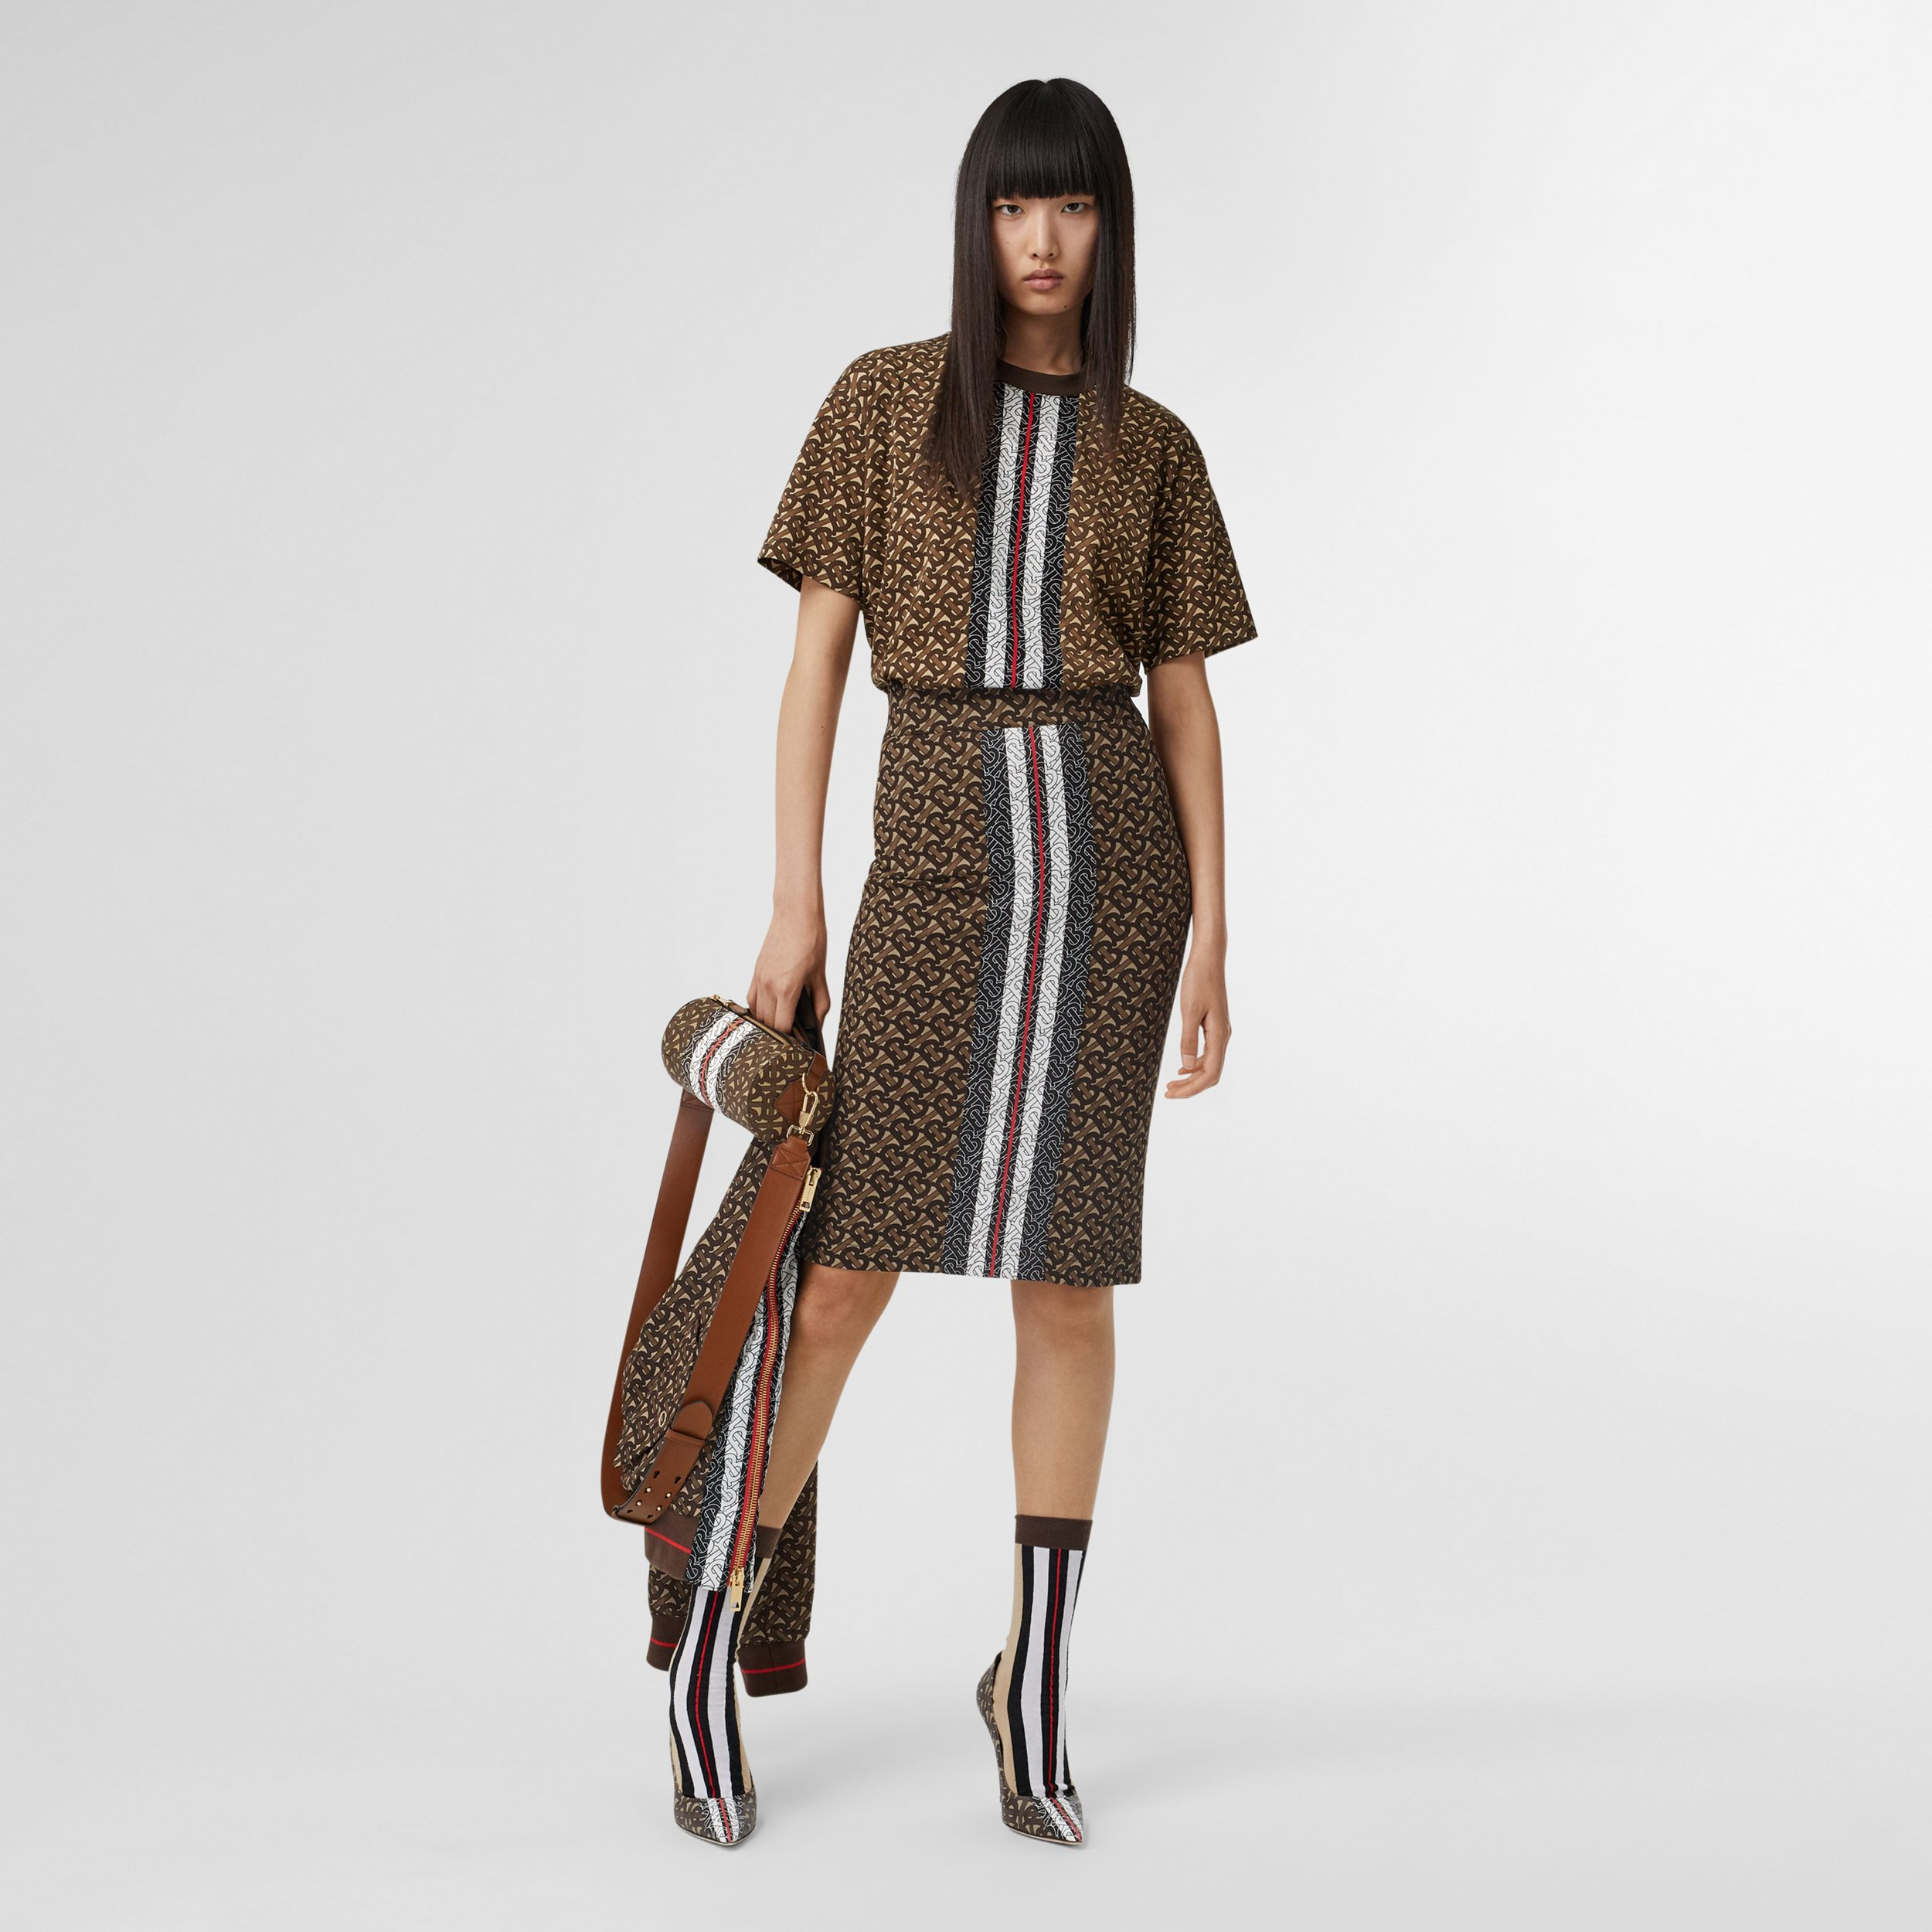 Monogram Stripe Print Stretch Jersey Pencil Skirt in Bridle Brown - Women | Burberry Singapore - 1